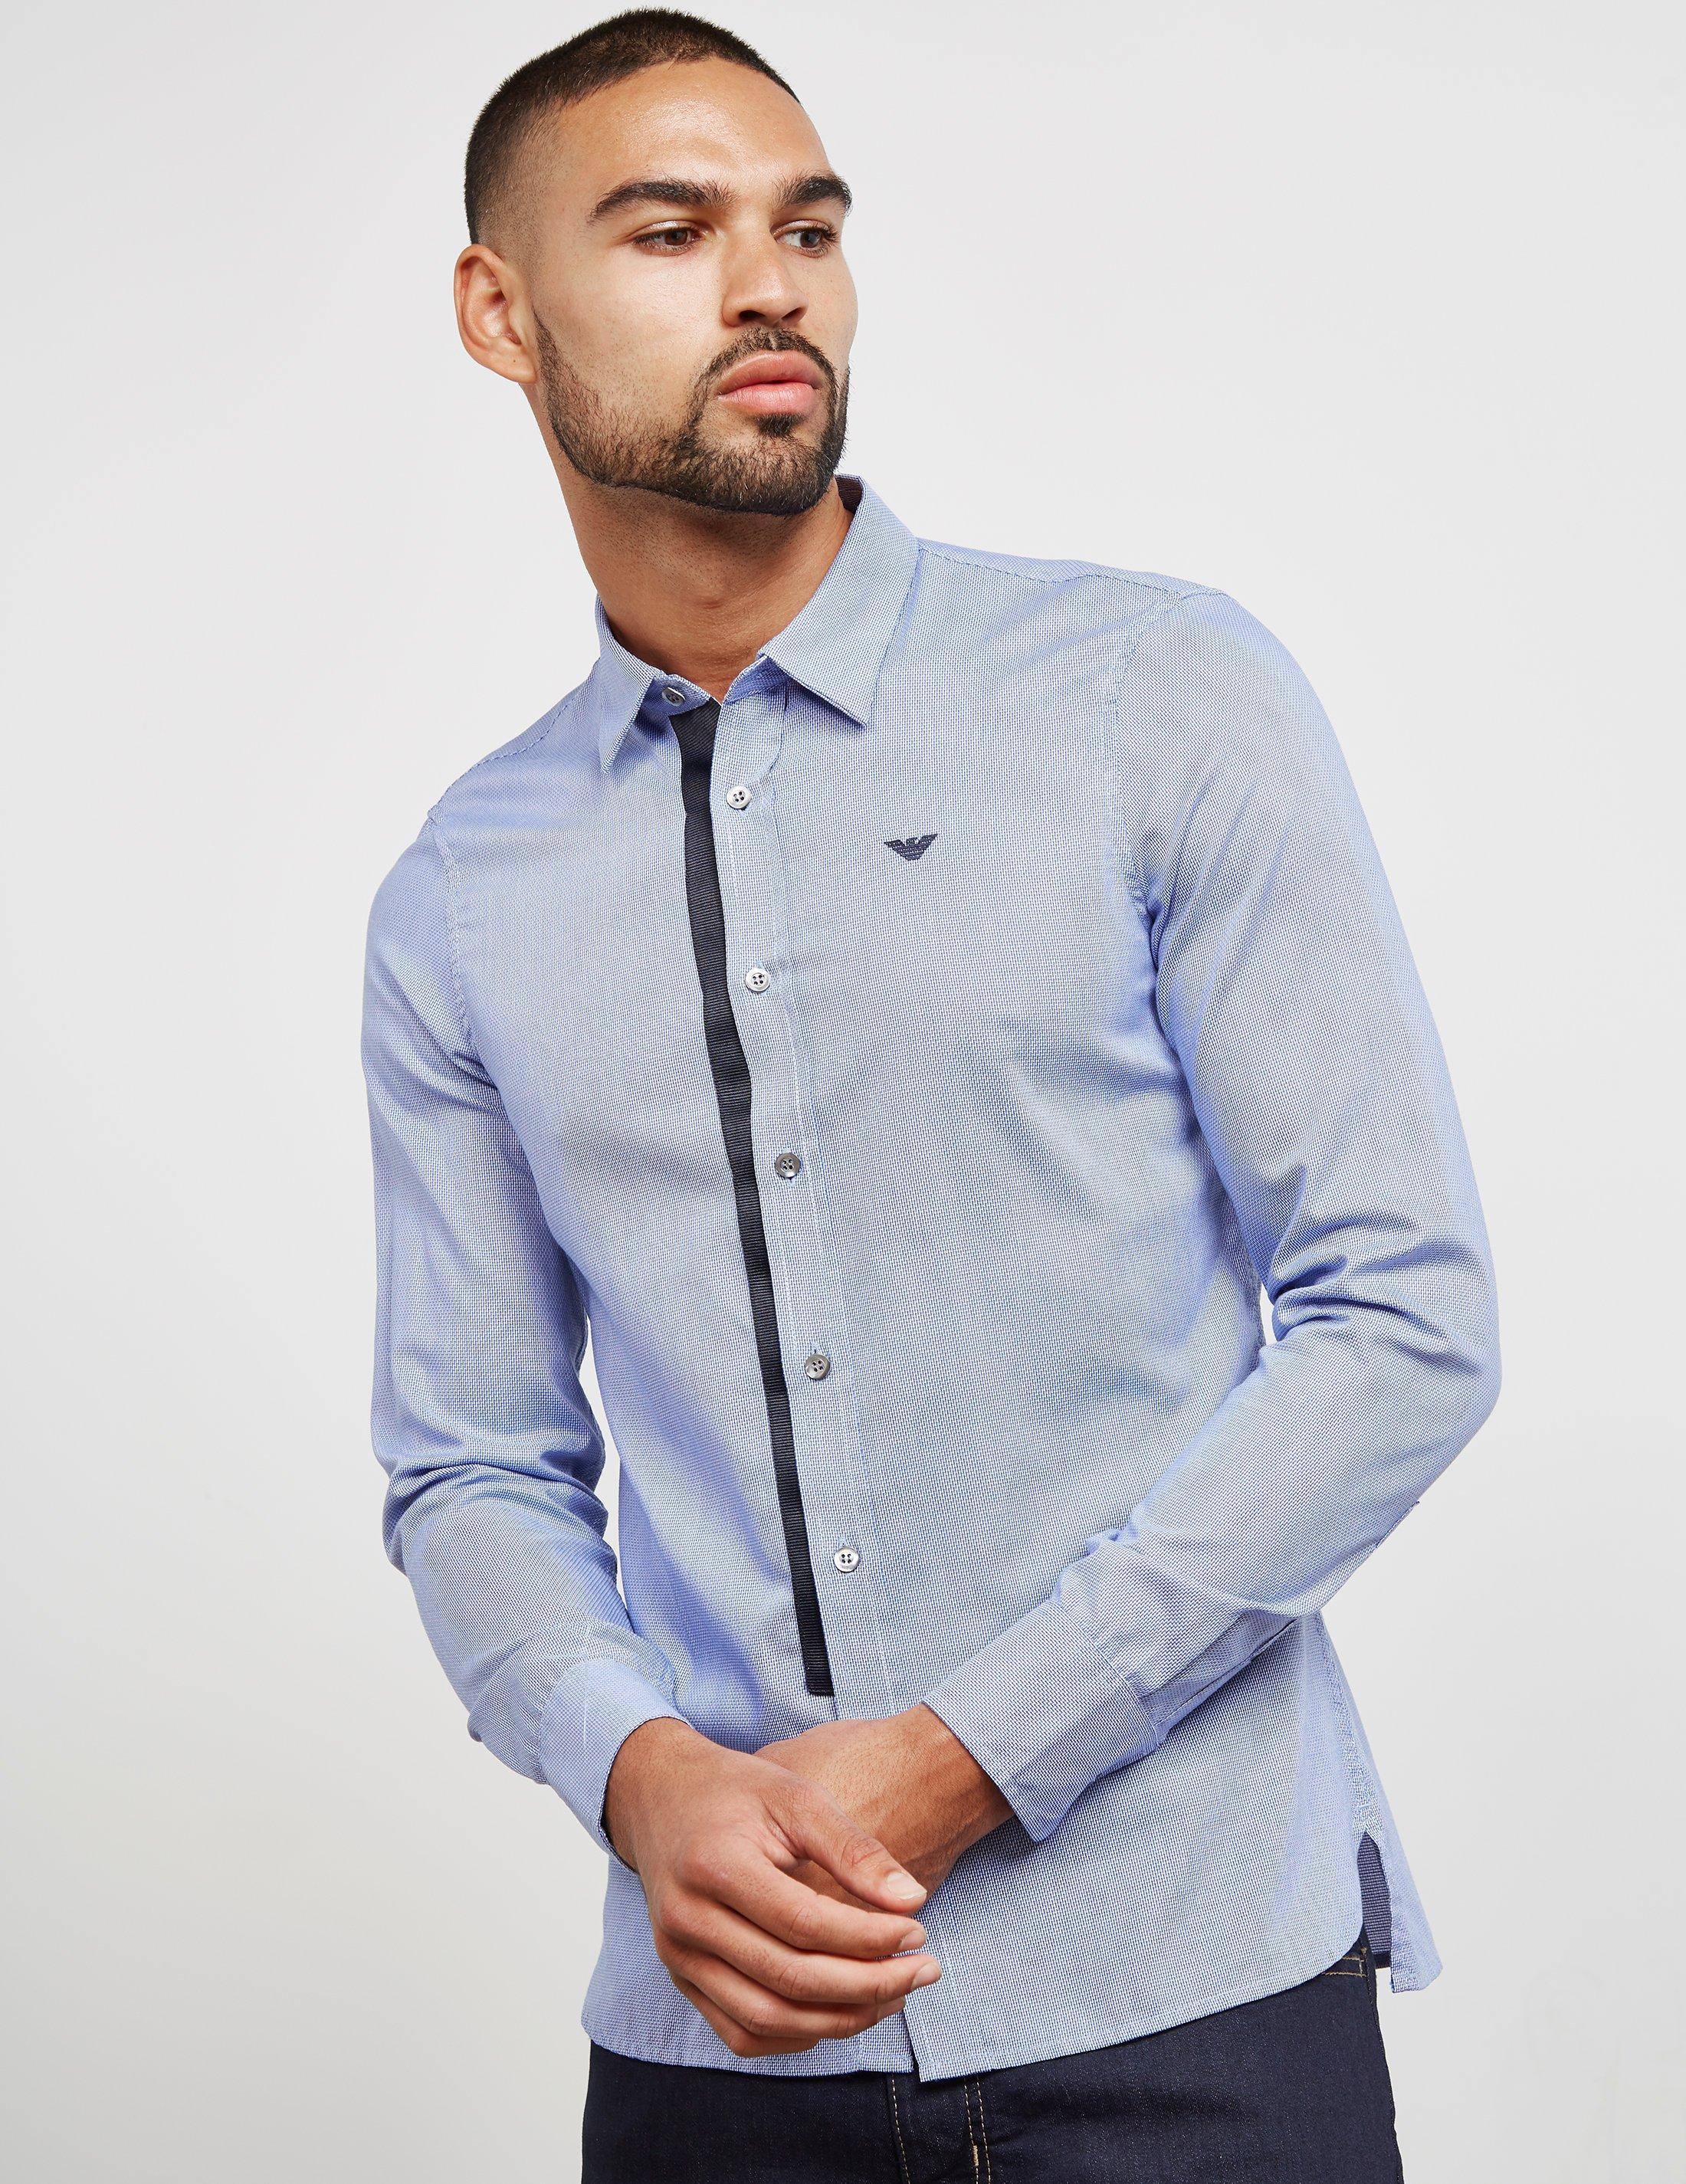 481771d3a Emporio Armani Tipped Placket Long Sleeve Shirt Blue in Blue for Men - Save  51% - Lyst